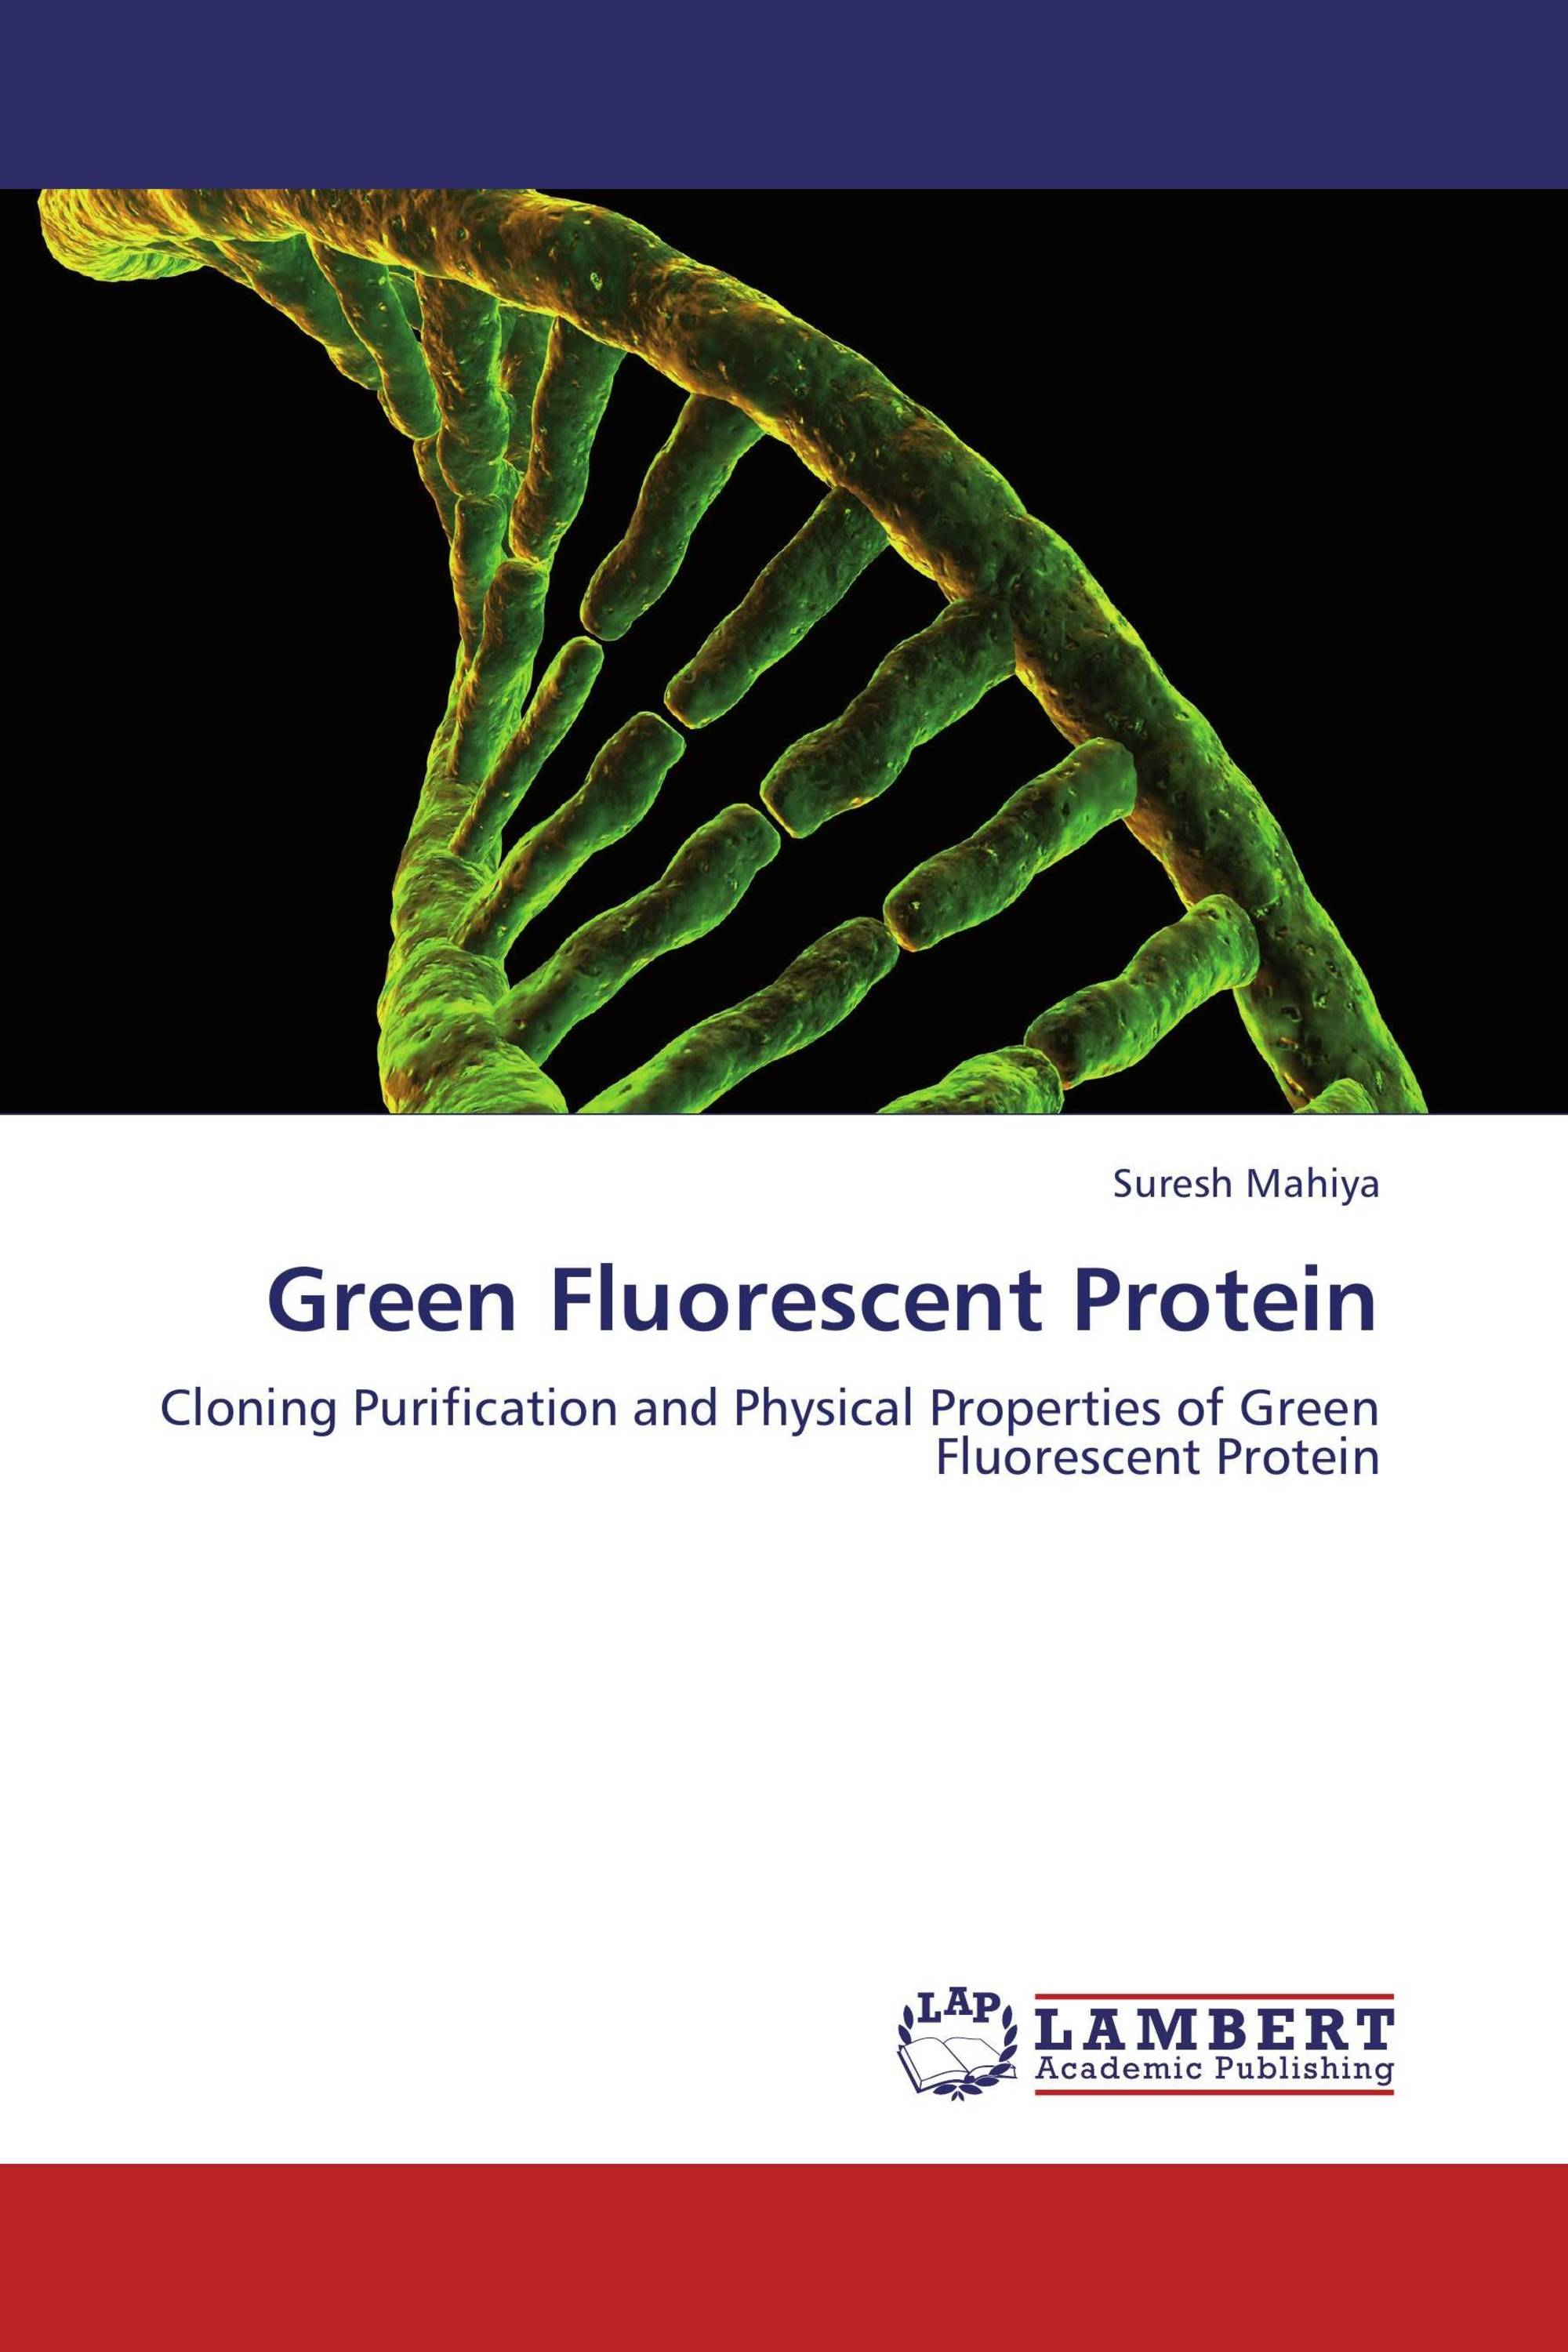 the new biological tool of green flourescent protein purification